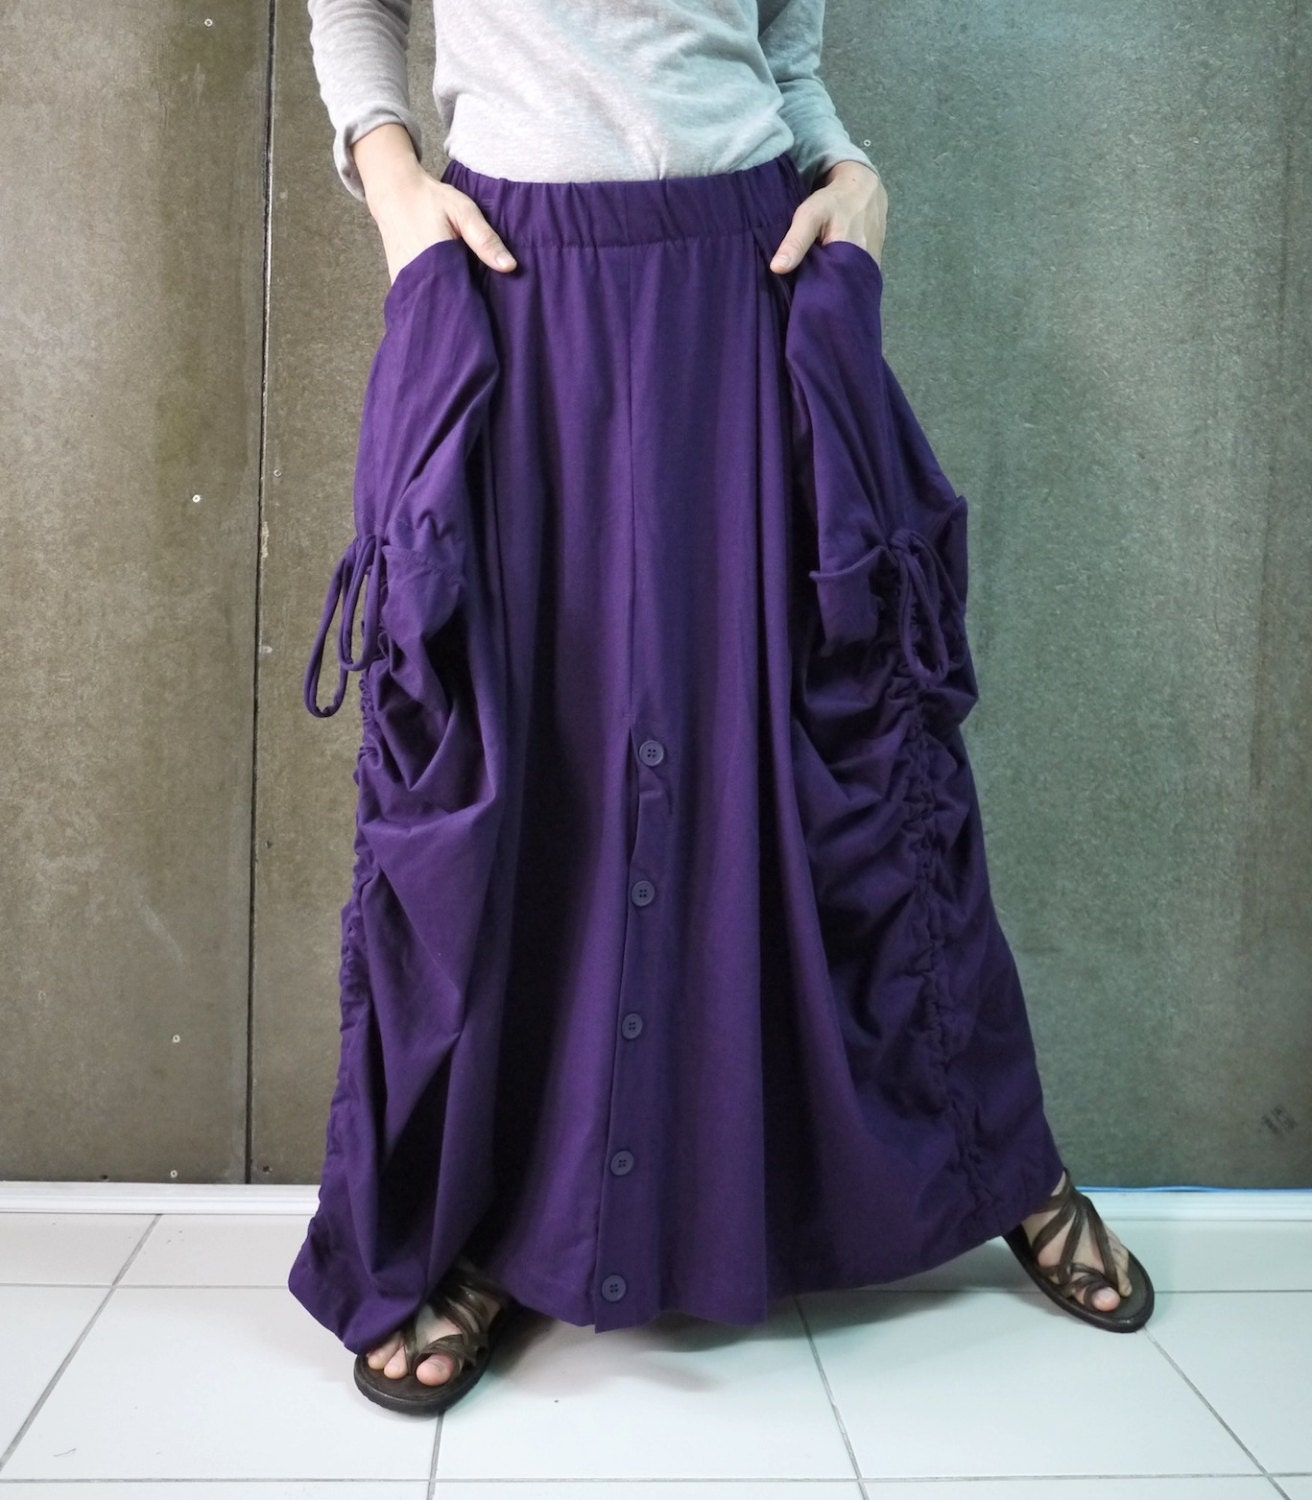 Women's plus size clothing. Cute trendy plus boho dresses, shirts, plus sized jeggings + accessories. Clothing for curvy beautiful women. Plus sized clothes.